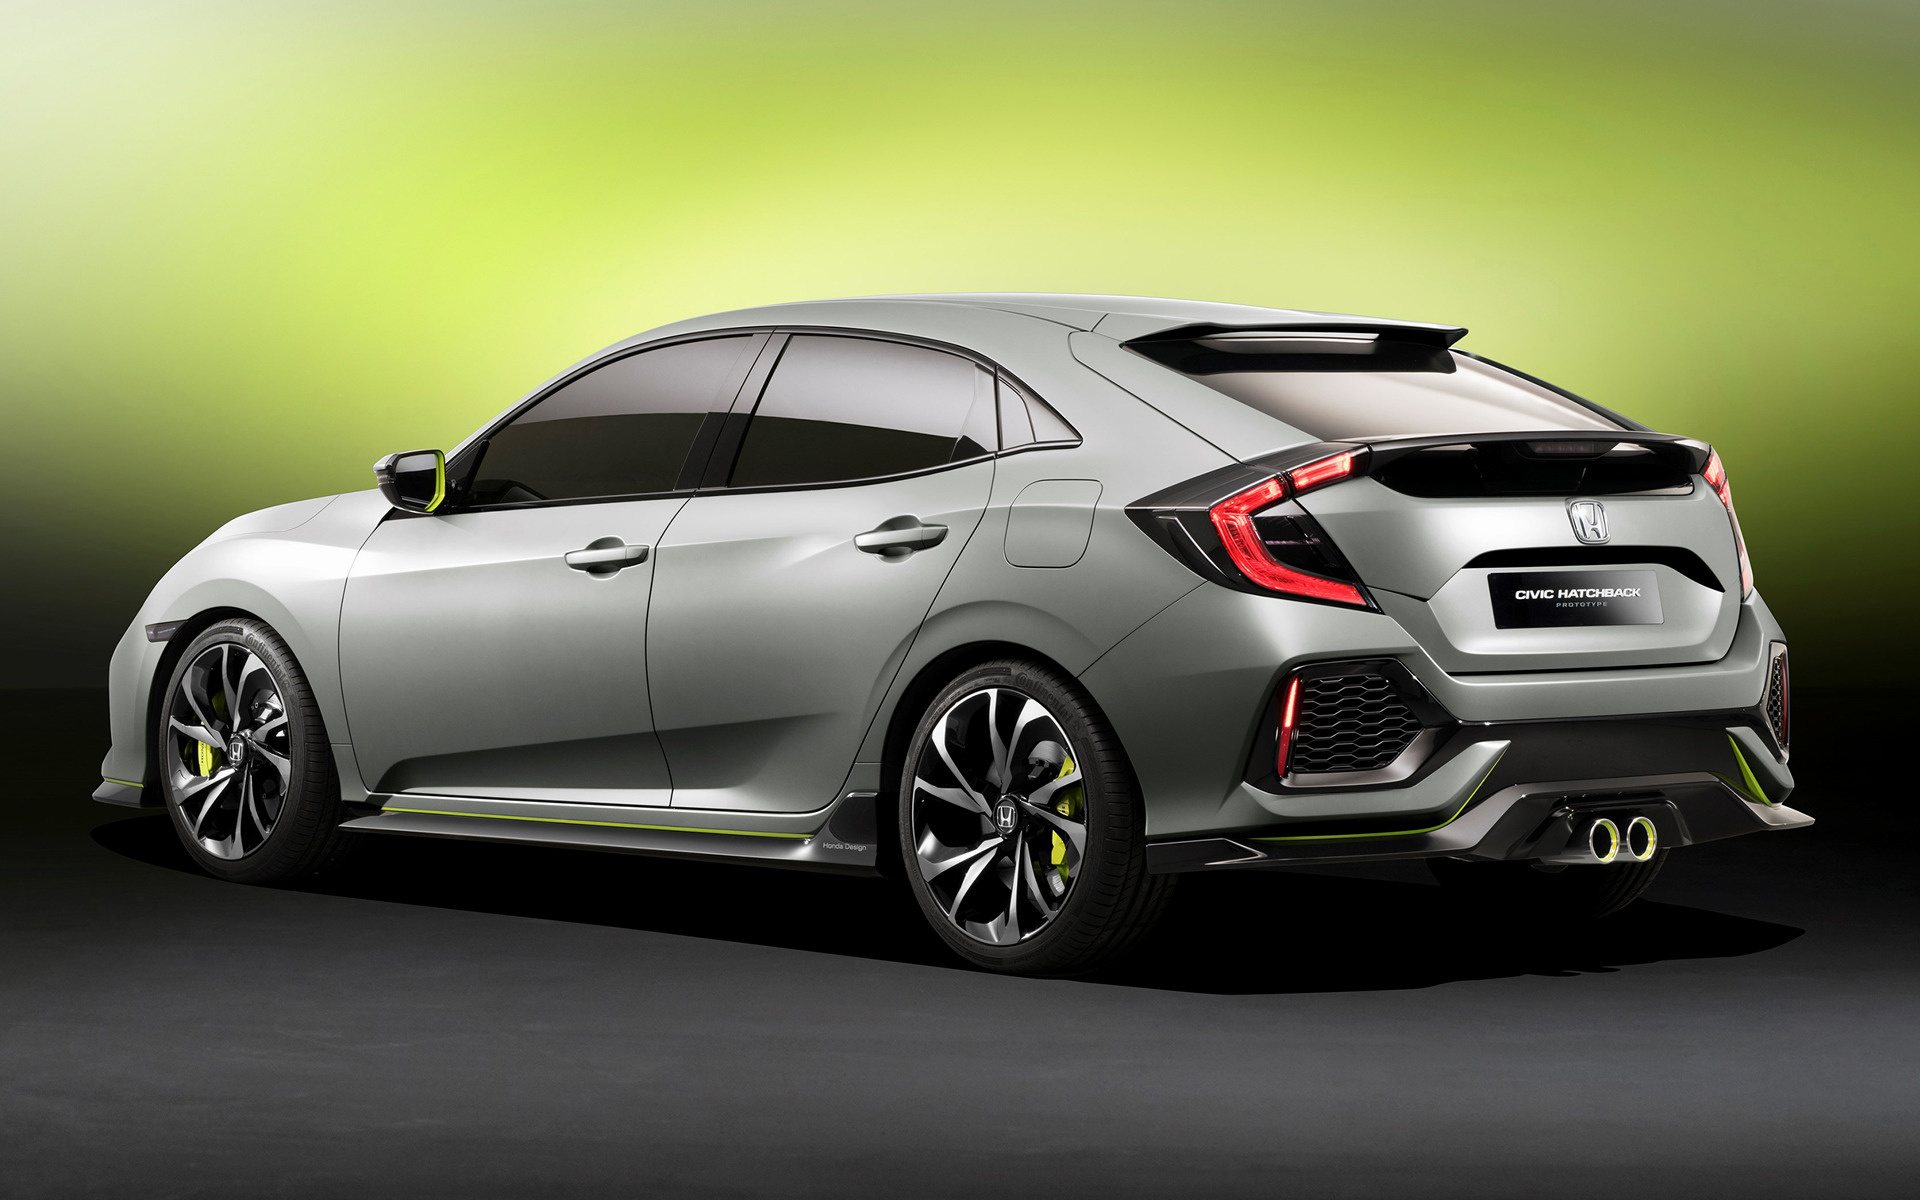 honda civic hatchback prototype 2016 wallpapers and hd images car pixel. Black Bedroom Furniture Sets. Home Design Ideas